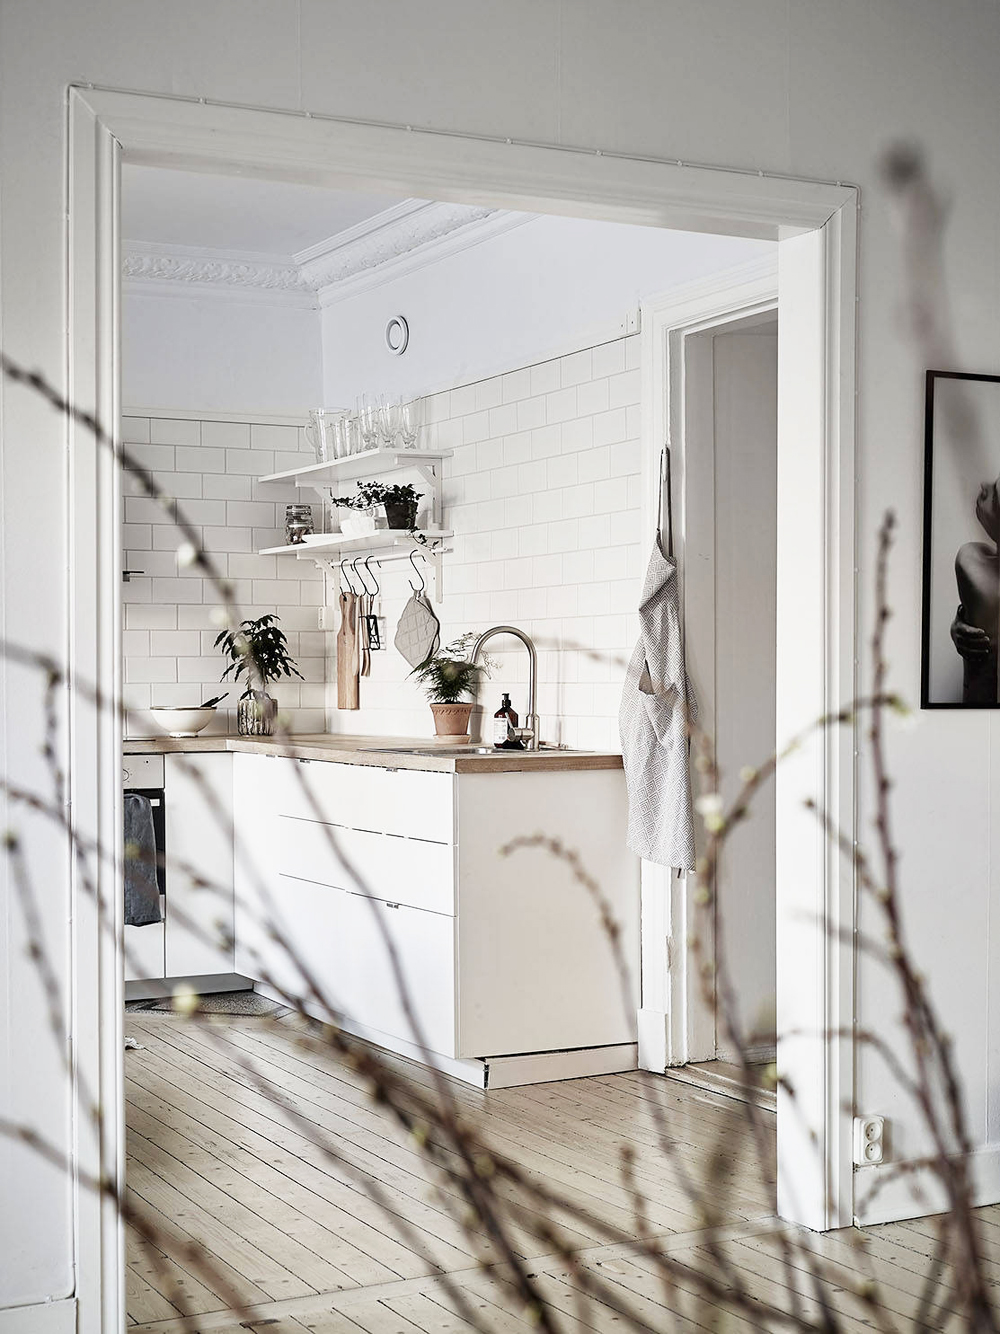 Oracle, Fox, Sunday, Sanctuary, Detail, Oriented, Black, and, white, Scandinavian, Interior, kitchen, black and white